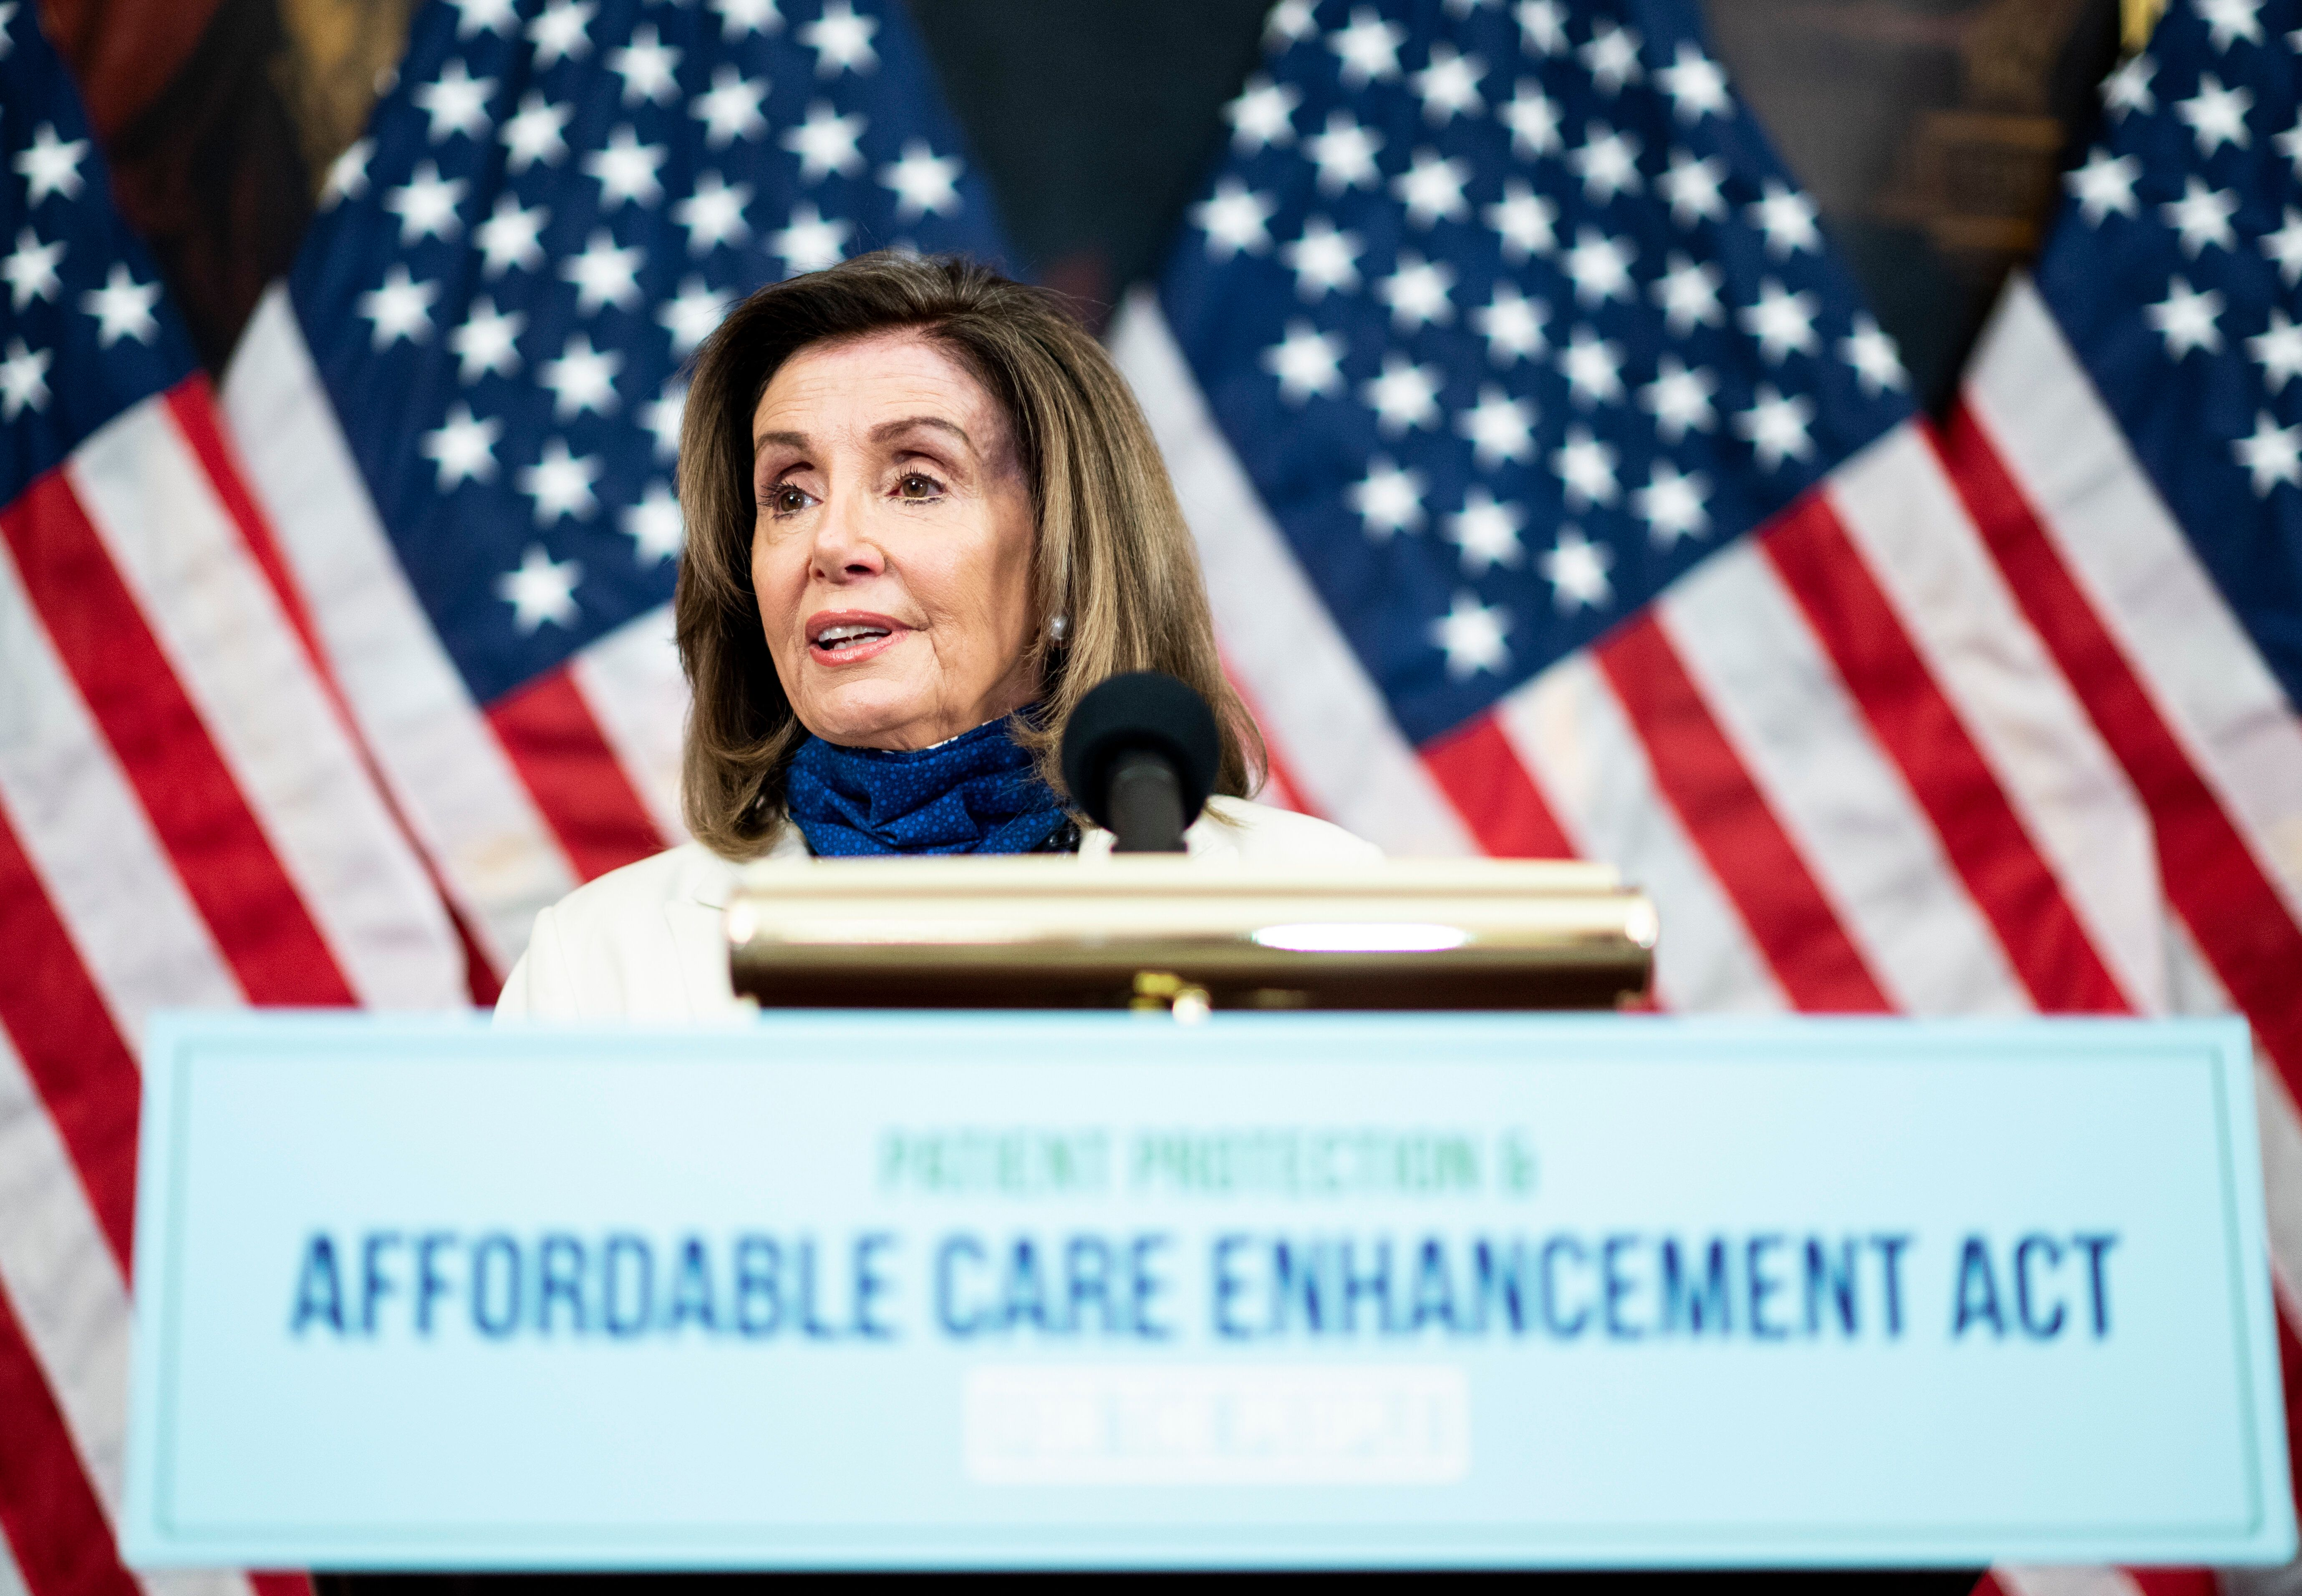 Speaker of the House Nancy Pelosi (D-Calif.) speaks during the House Democrats' news conference to unveil the Patient Protect